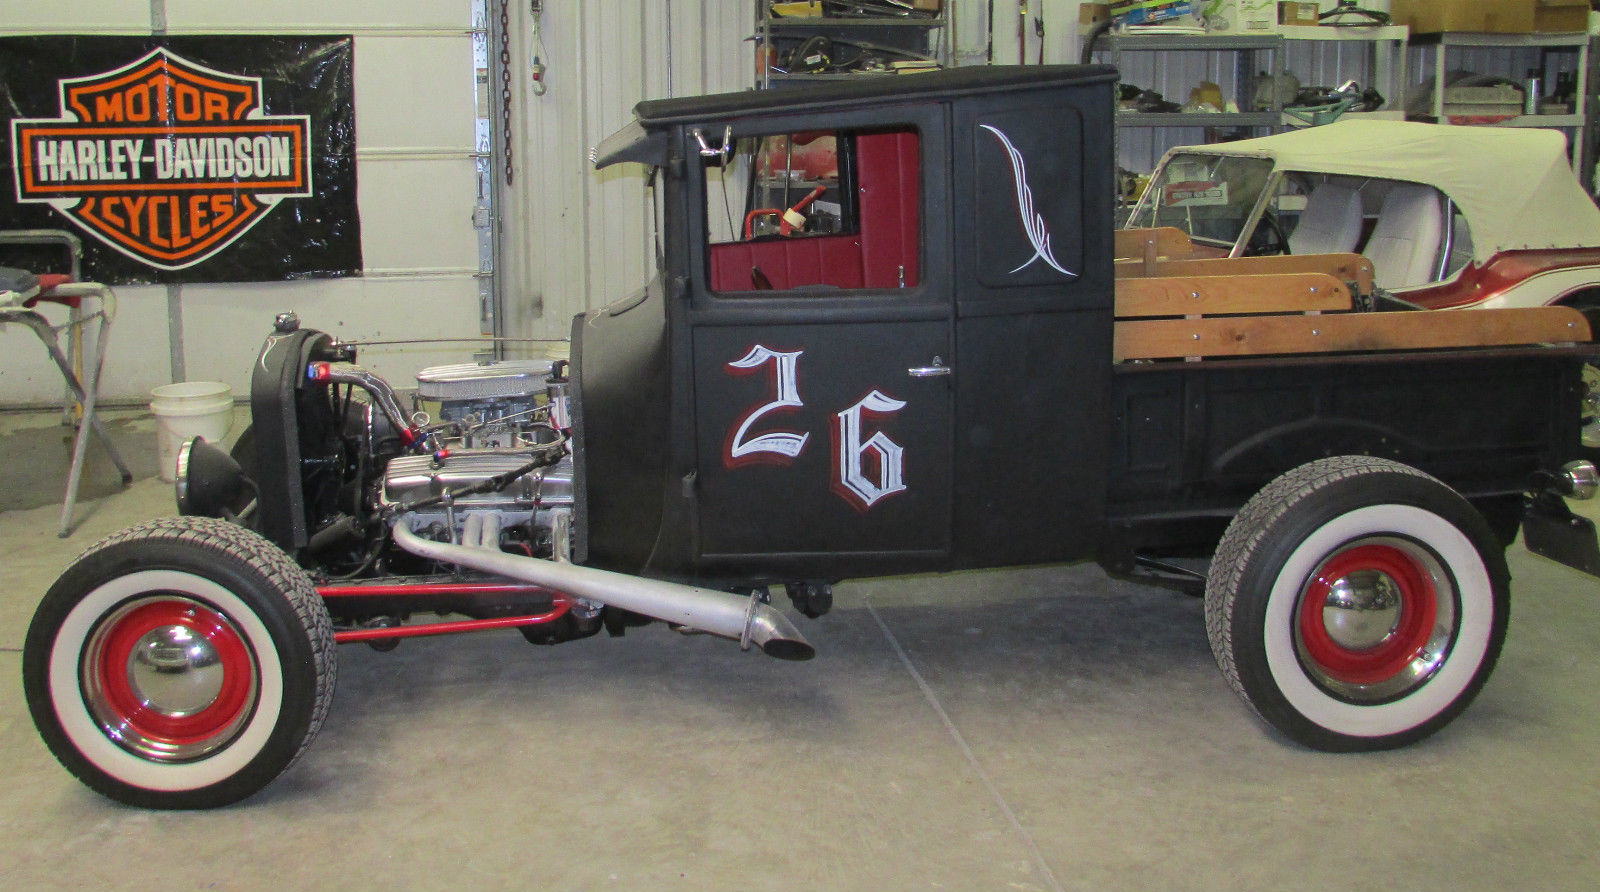 1926 Ford Model T Pickup Truck A Ratrod 1930 1931 1928 1929 Hotrod Rat Rod For Sale In Easley South Carolina United States For Sale Photos Technical Specifications Description